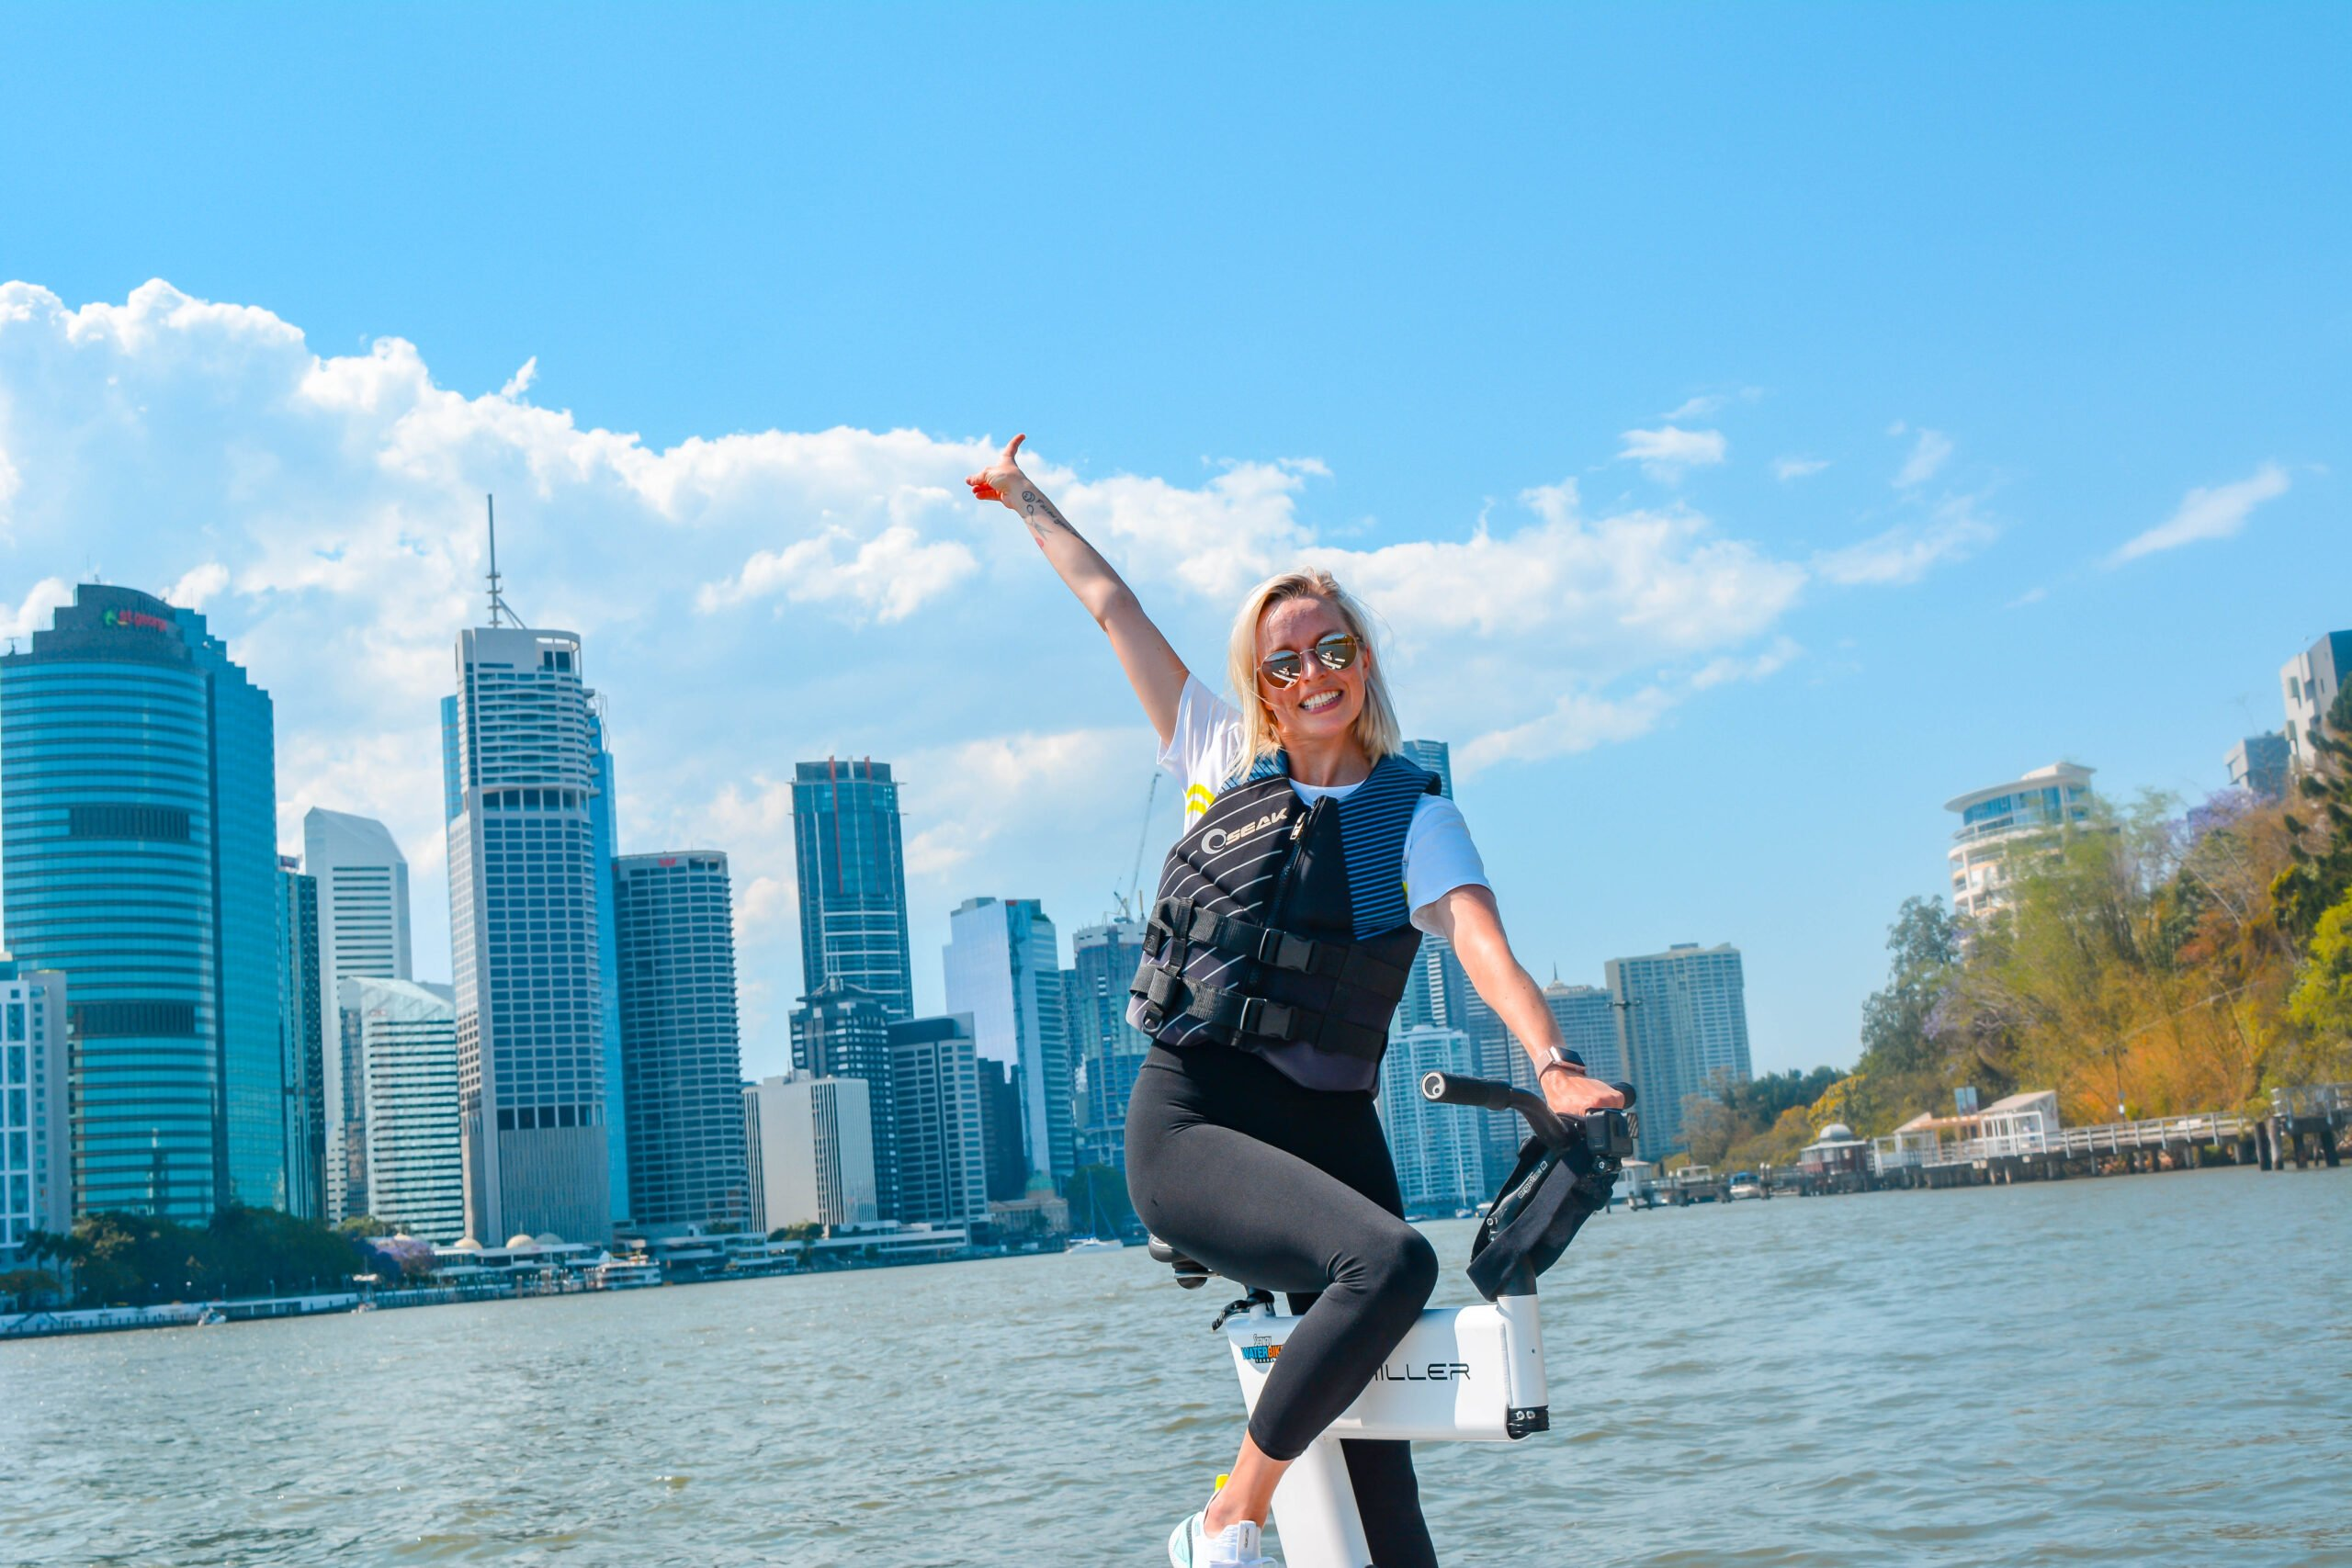 Brisbane water bike hire